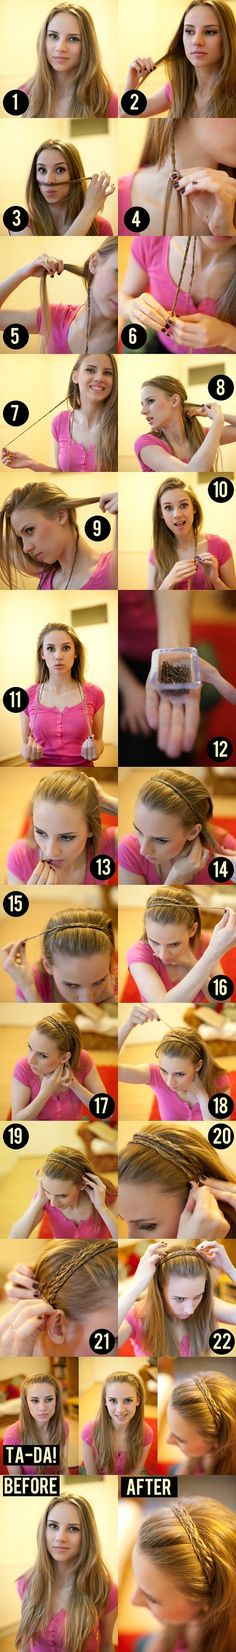 I want to try this hairstyle so bad. It seems just easy enough for an everyday look. Note: You need long hair to do this.